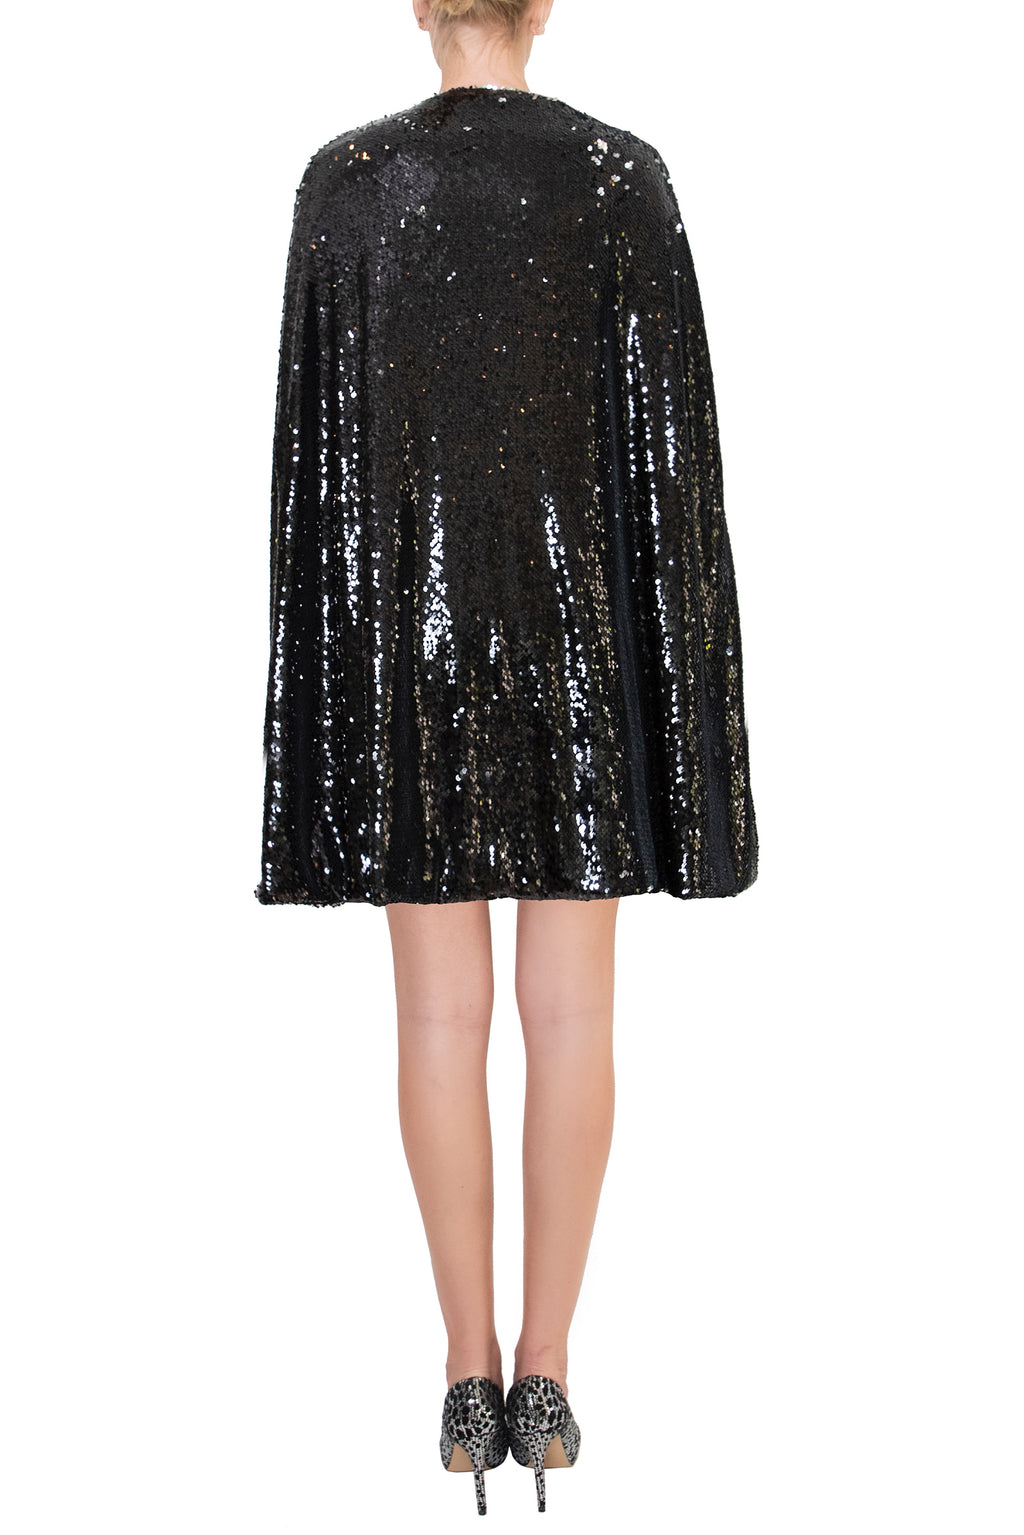 Ilona Rich Black Sequin Cape & Dress (Bundle)